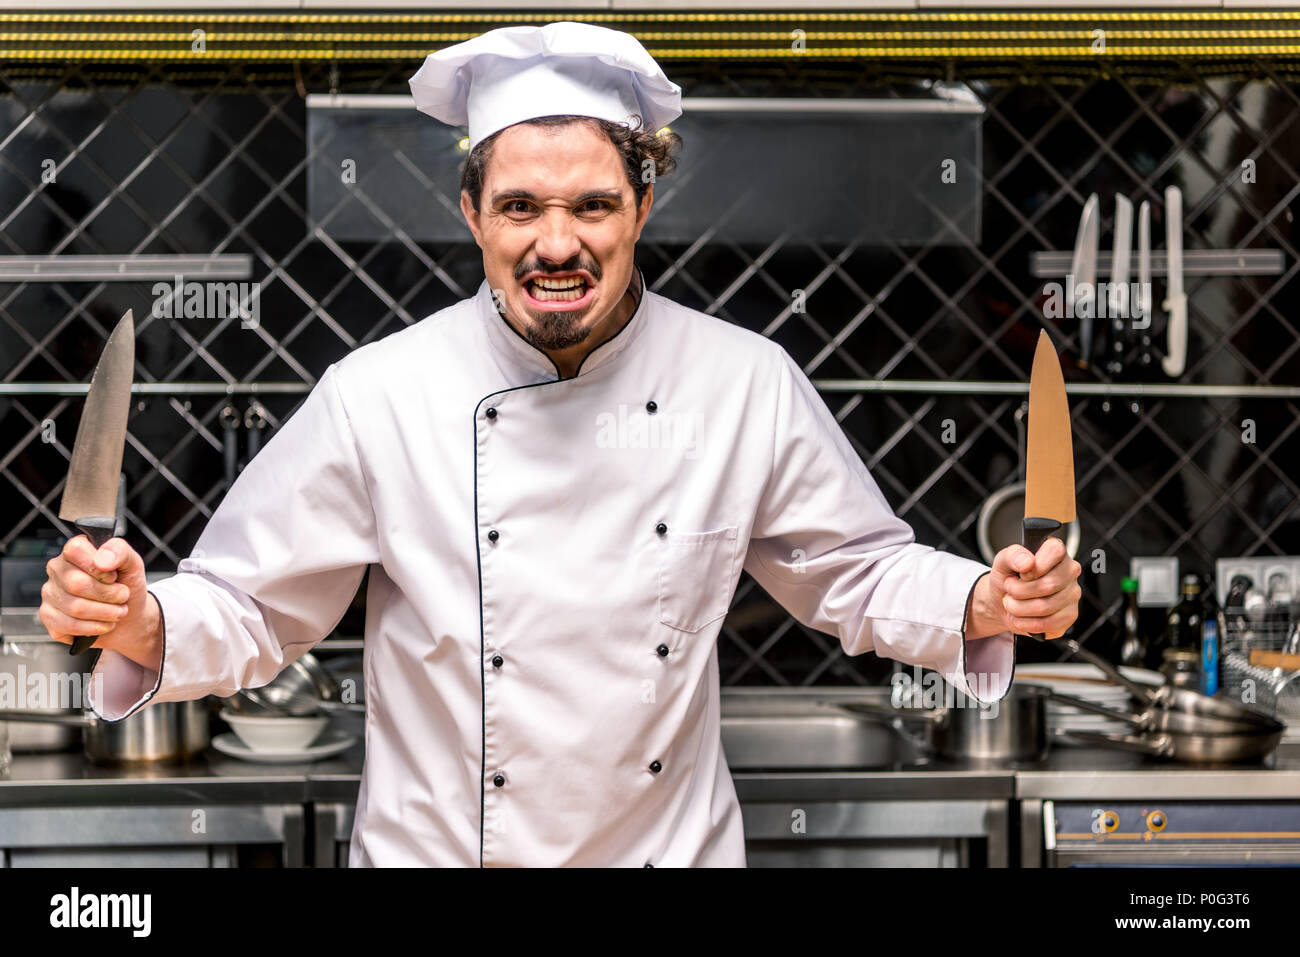 chef grimacing and holding two knifes in hands - Stock Image